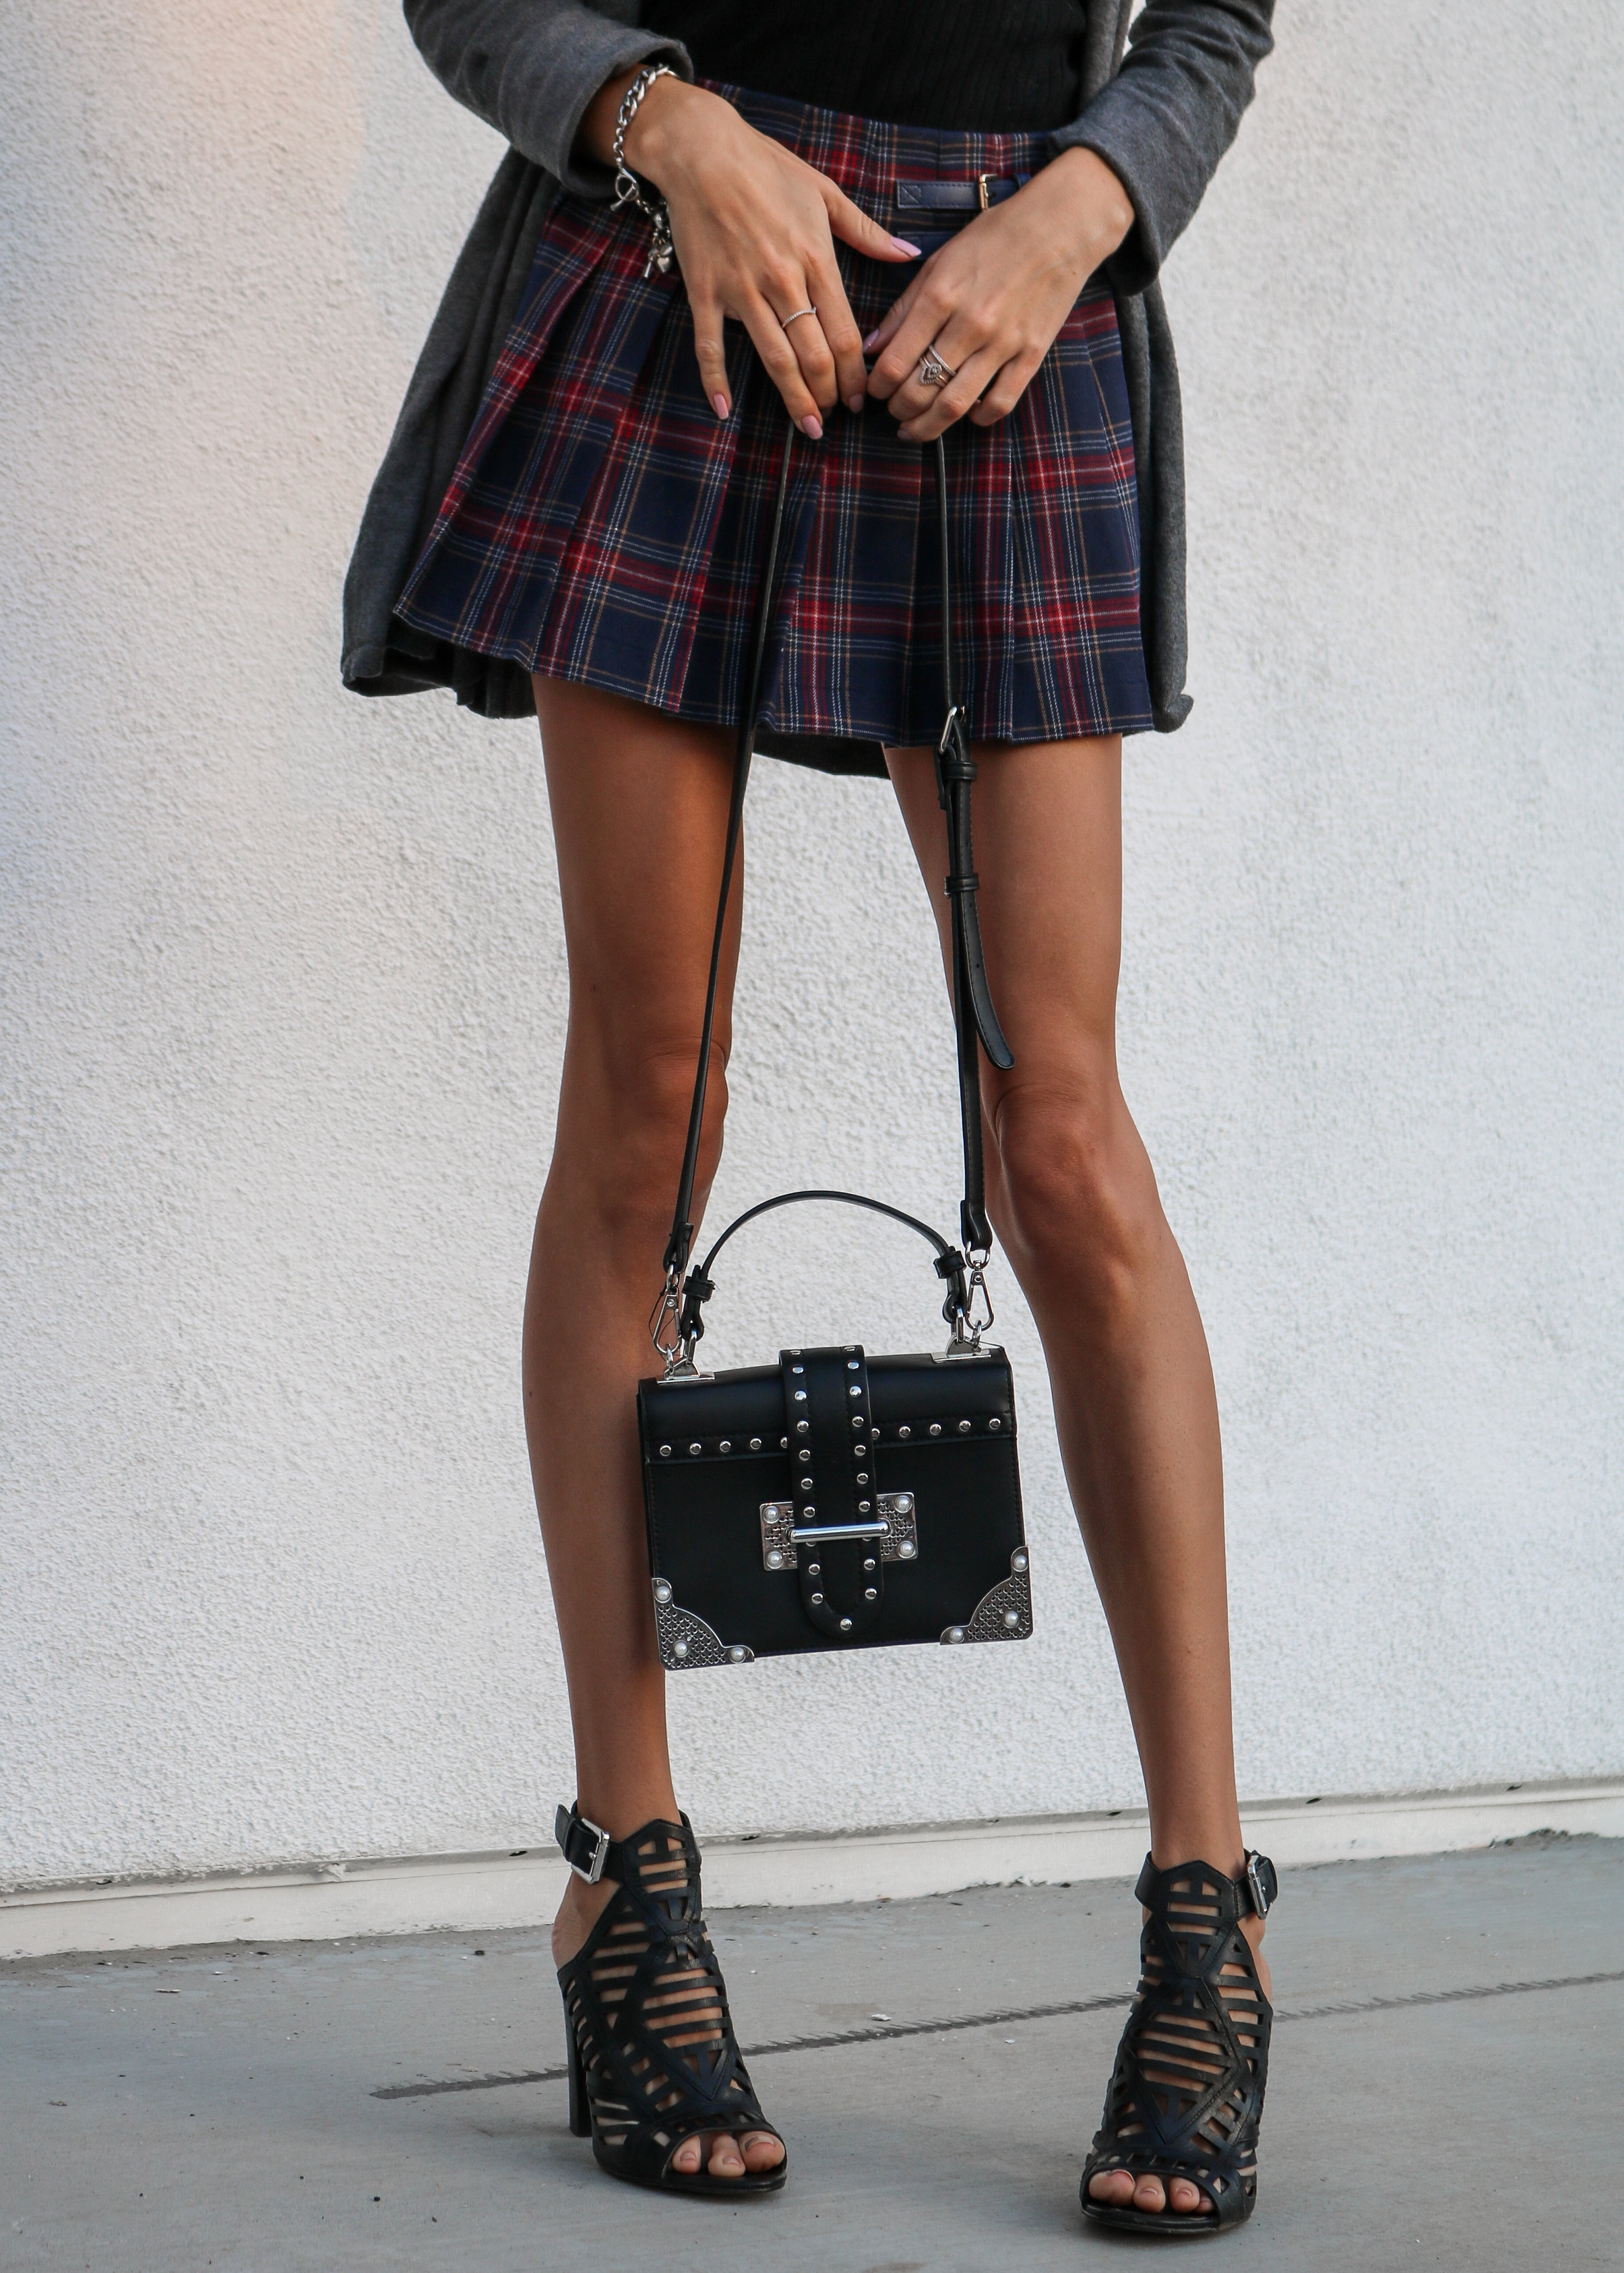 The Hungarian Brunette schoolgirl skirt and advice to my high-school self